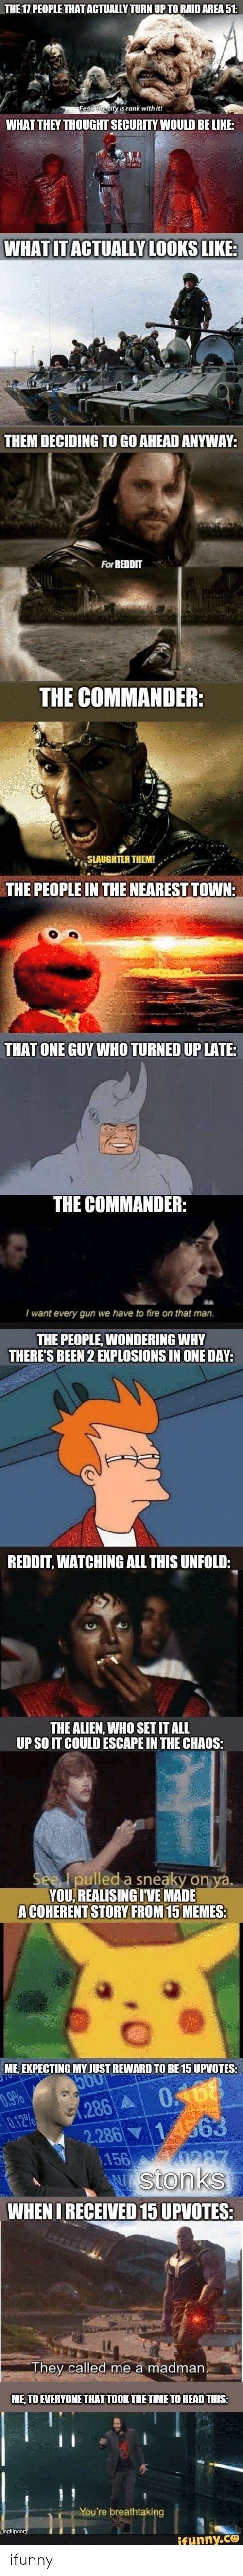 the commander: THE 17 PEOPLE THAT ACTUALLY TURN UP TO RAID AREA 51:  Fear the city is rank with it!  WHAT THEY THOUGHT SECURITY WOULD BE LIKE:  WHAT IT ACTUALLY LOOKS LIKE:  THEM DECIDING TO GO AHEAD ANYWAY:  For REDDIT  THE COMMANDER:  SLAUGHTER THEM!  THE PEOPLE IN THE NEAREST TOWN:  THAT ONE GUY WHO TURNED UP LATE:  THE COMMANDER:  I want every gun we have to fire on that man.  THE PEOPLE, WONDERING WHY  THERE'S BEEN 2 EXPLOSIONS IN ONE DAY:  REDDIT, WATCHING ALL THIS UNFOLD:  THE ALIEN, WHO SET IT ALL  UP SO IT COULD ESCAPE IN THE CHAOS:  See, I pulled a sneaky on ya.  YOU, REALISING IVE MADE  A COHERENT STORY FROM 15 MEMES:  ME, EXPECTING MY JUST REWARD TO BE 15 UPVOTES:  5O0  0.9%  0.12%  0.168  1.286 A  2.286 14563  156  0287  Wstonks  WHEN I RECEIVED 15 UPVOTES:  They called me a madman.  ME, TO EVERYONE THAT TOOK THE TIME TO READ THIS:  You're breathtaking  umgflip.com  ifunny.co ifunny